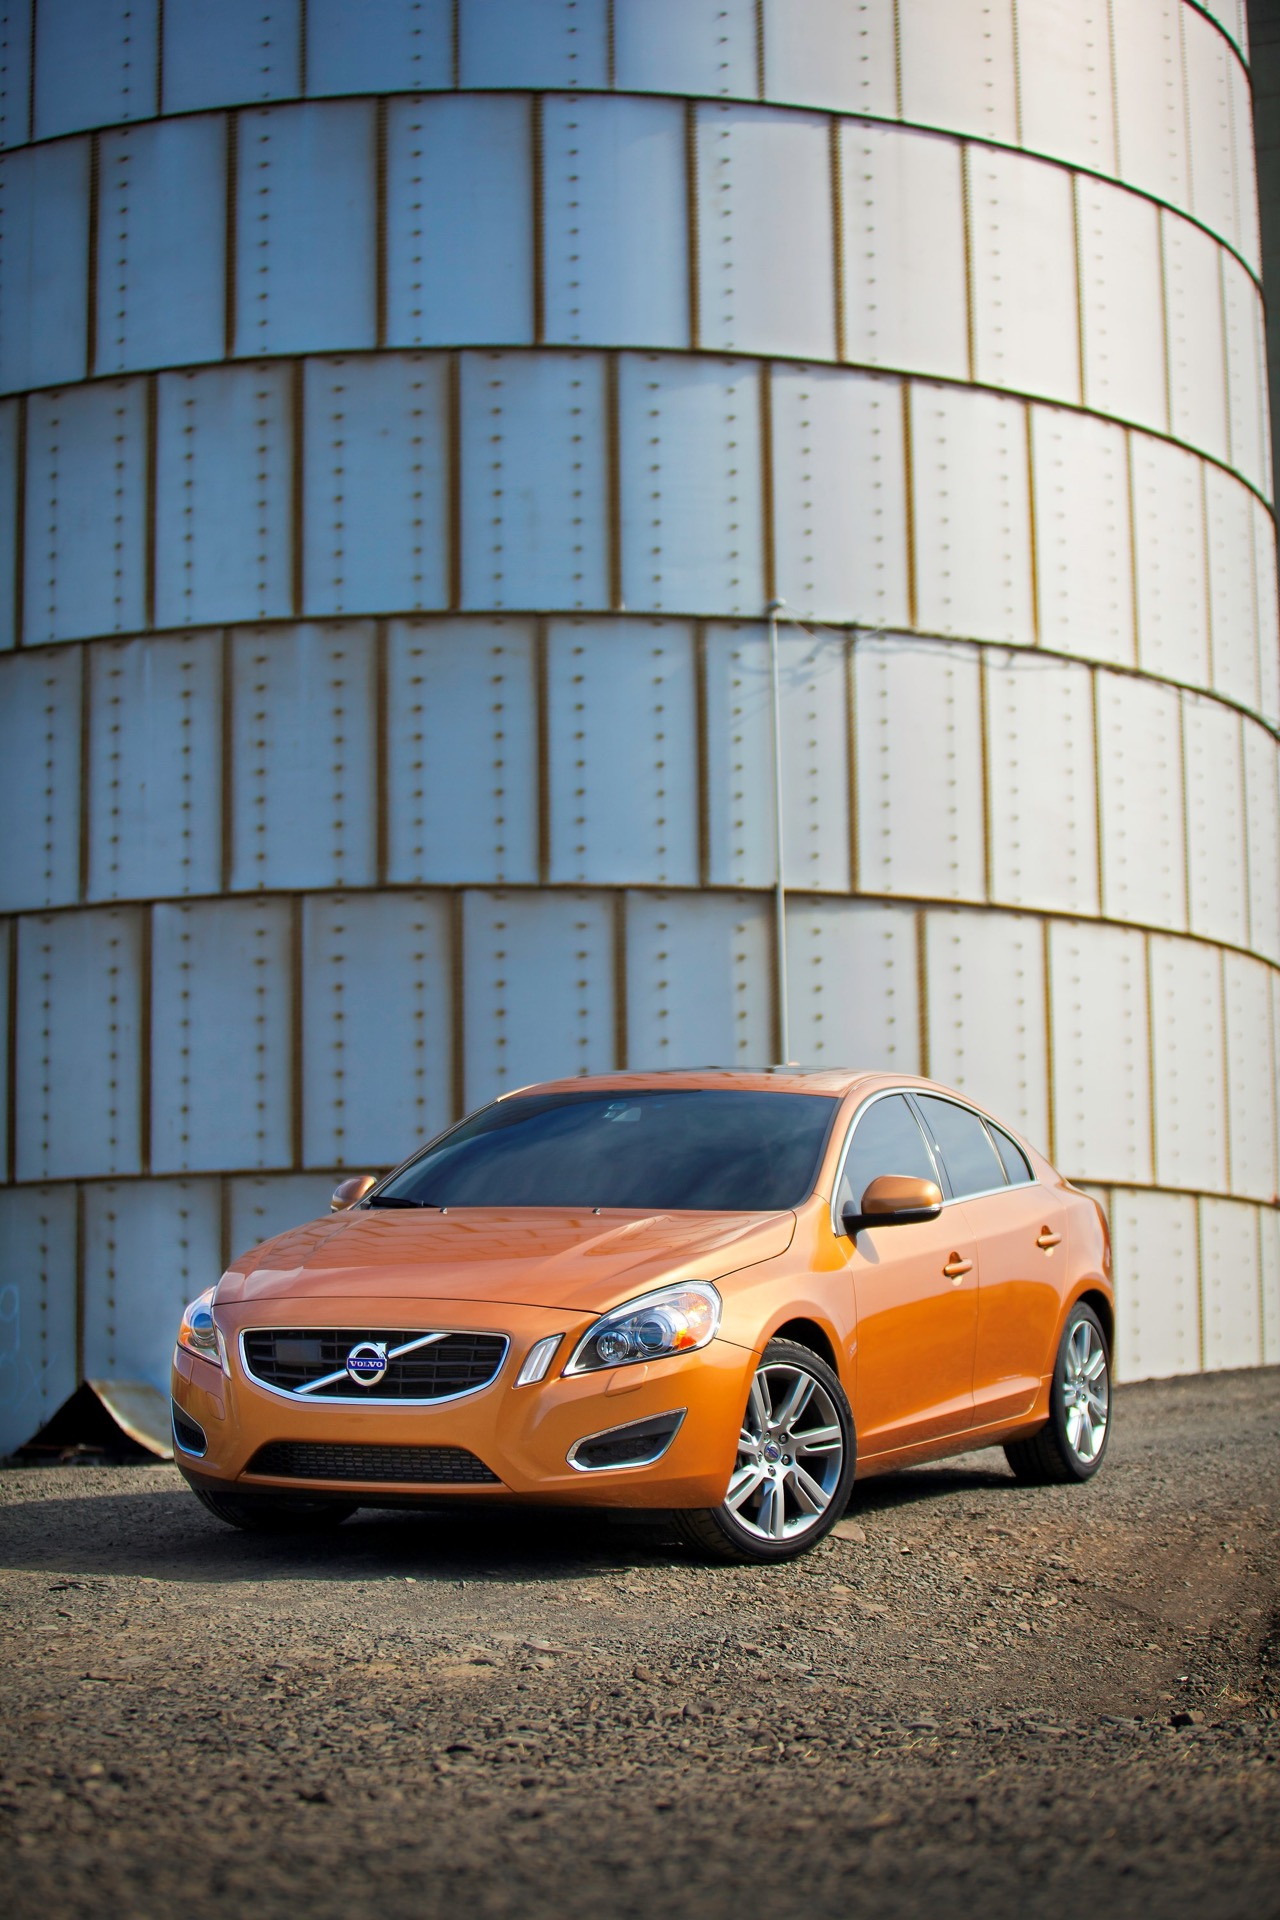 S60 T6 Awd Static Beauty05 -  Volvo